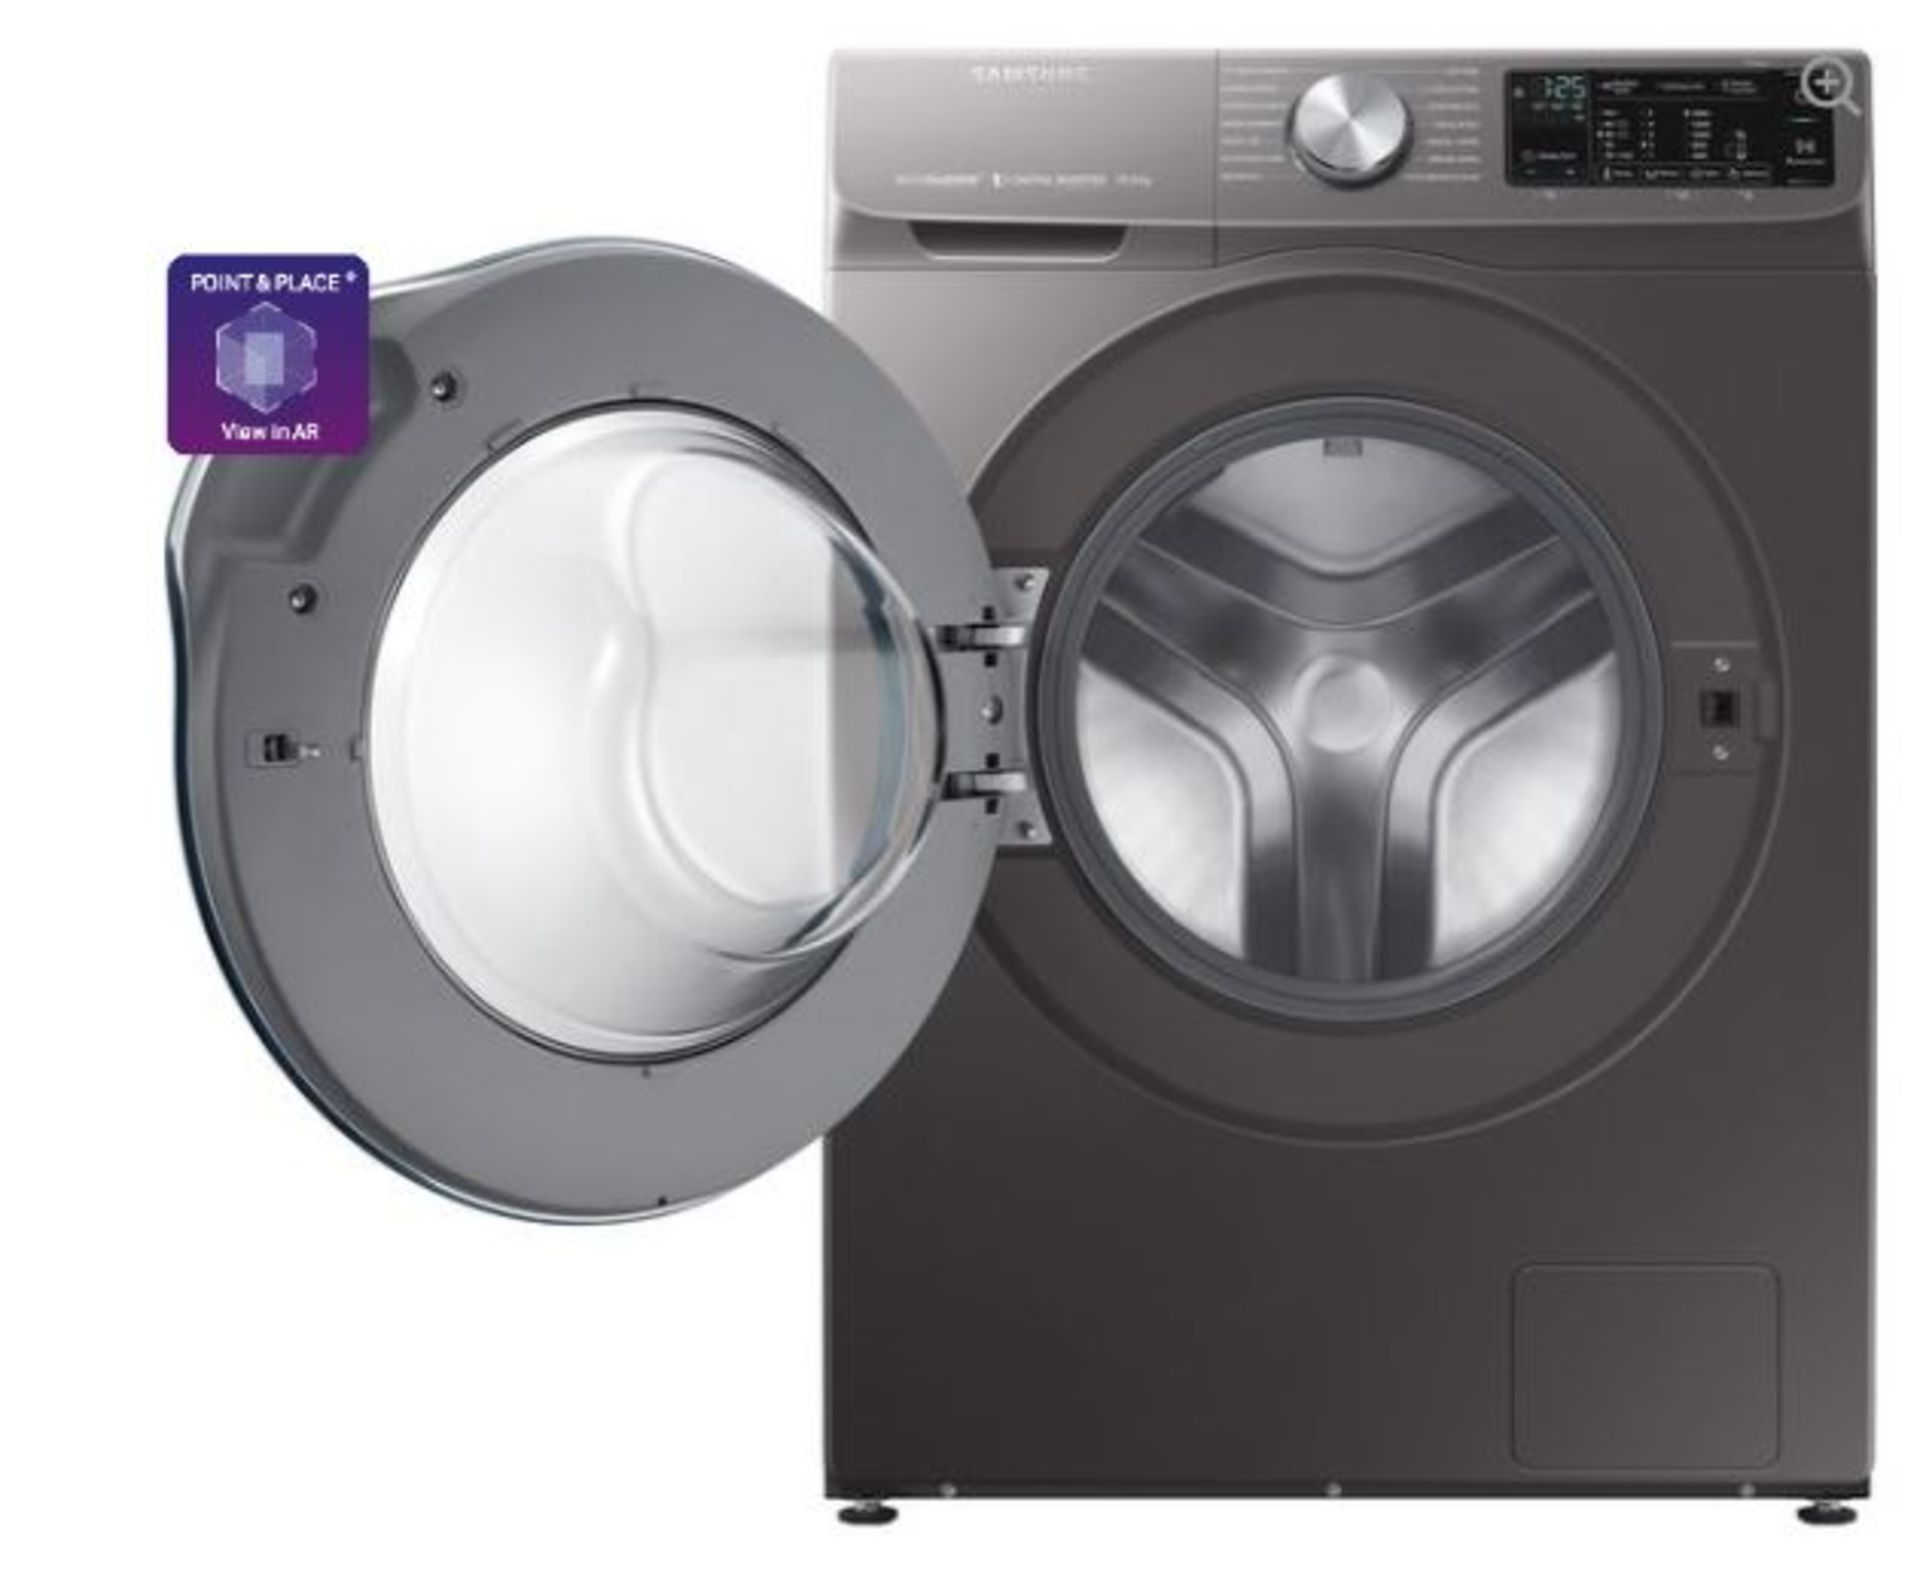 Pallet of 2 Samsung Premium Washing machines. Latest selling price £1,229.97* - Image 2 of 8